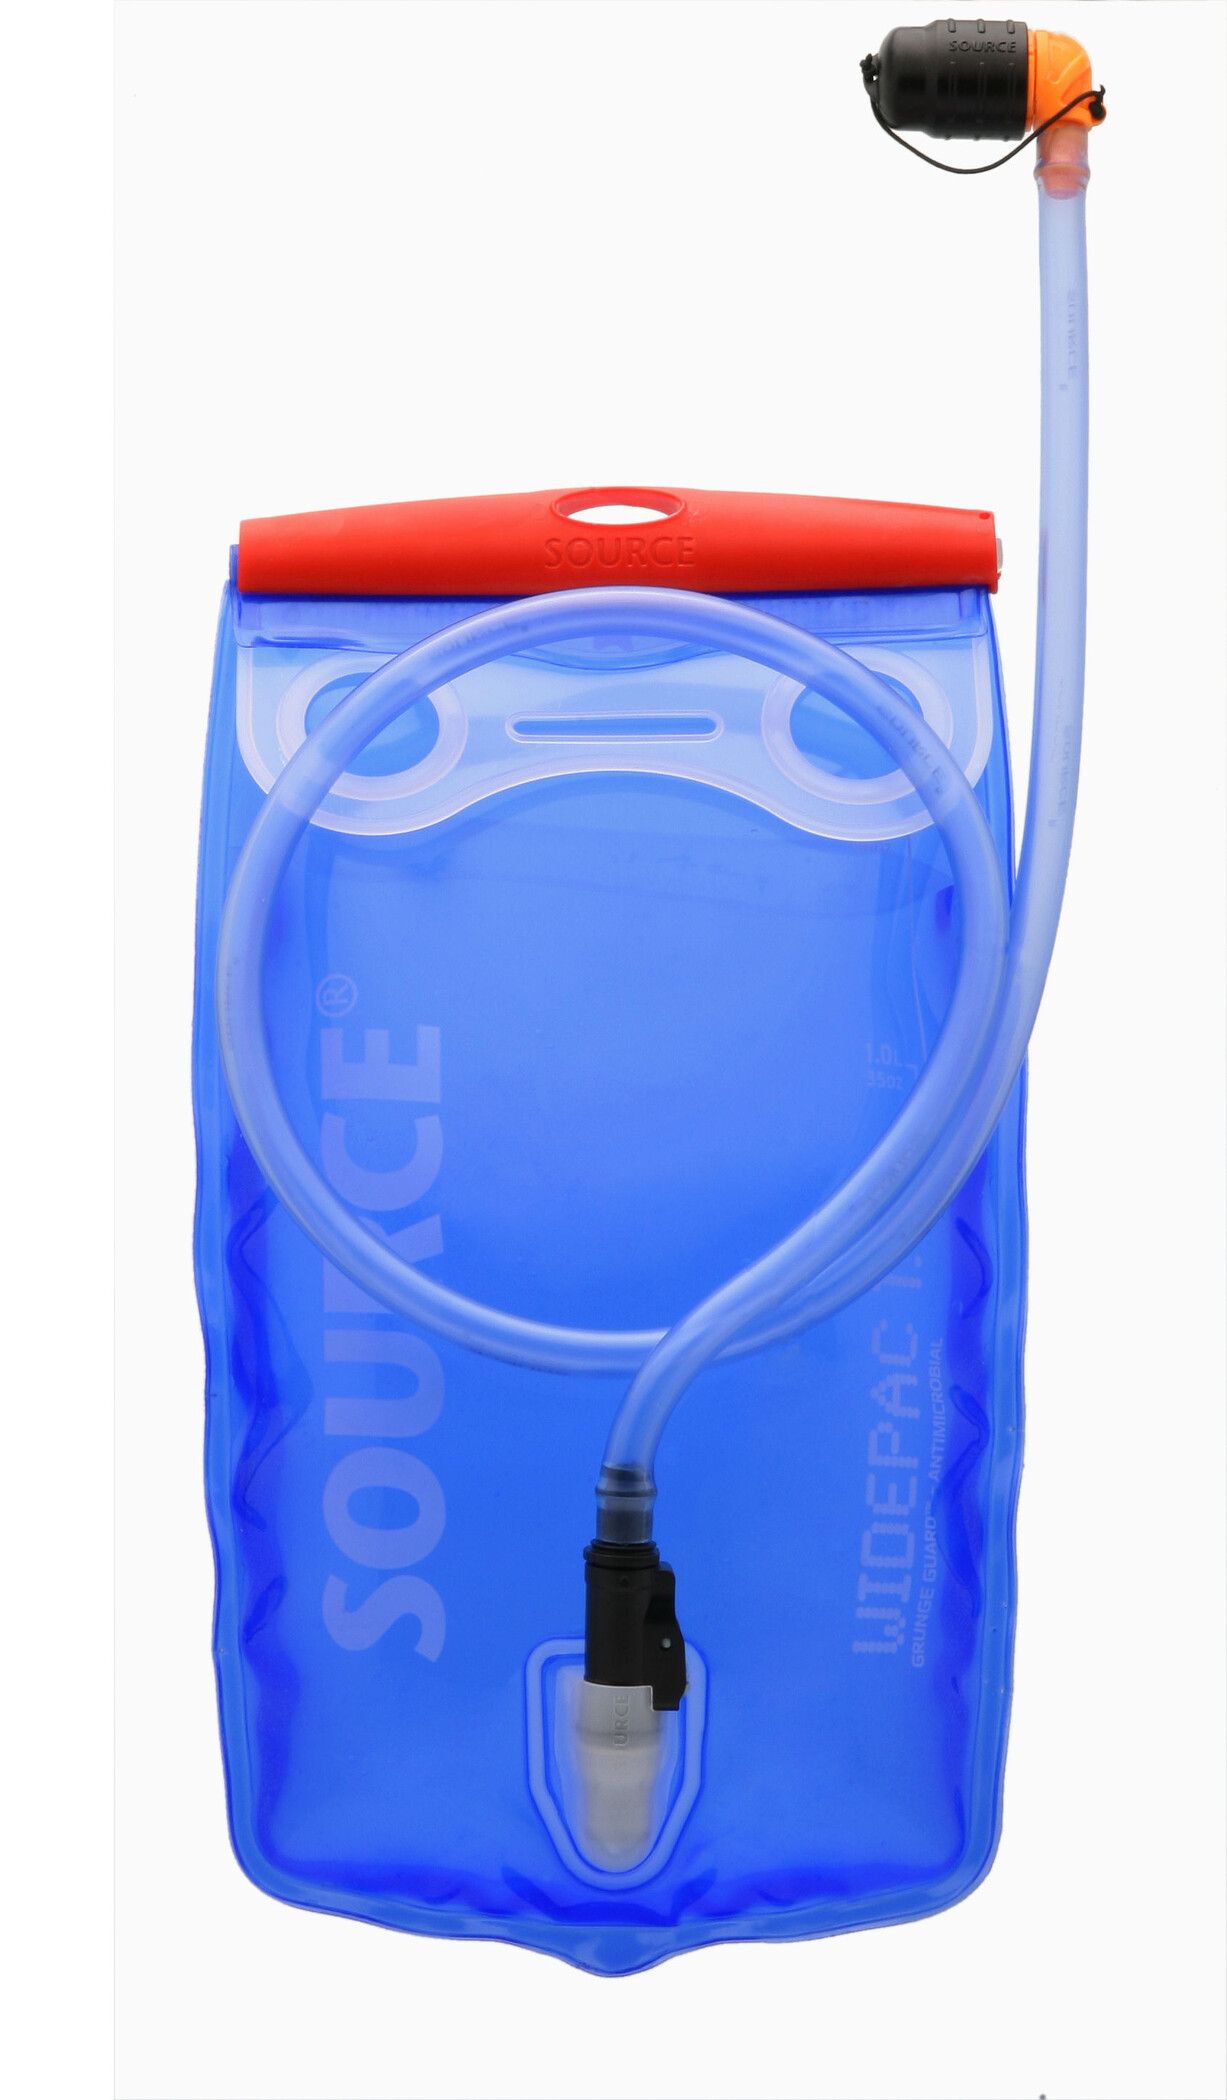 SOURCE Widepac Hydration Bladder 1.5 L, transparent/blue (2019) | item_misc